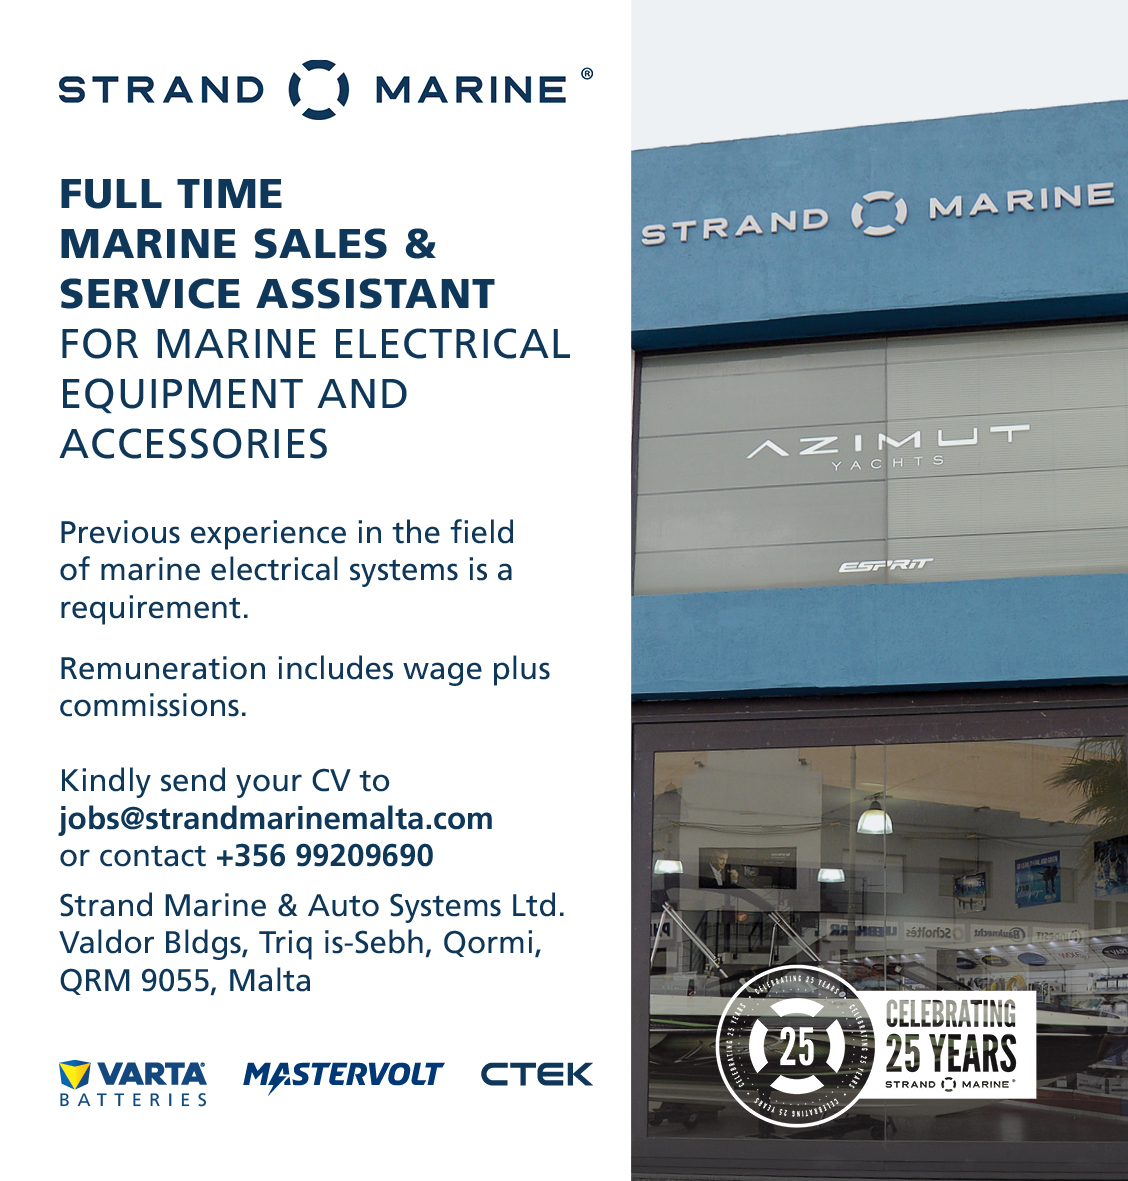 Full Time Marine Sales & Service Assistant